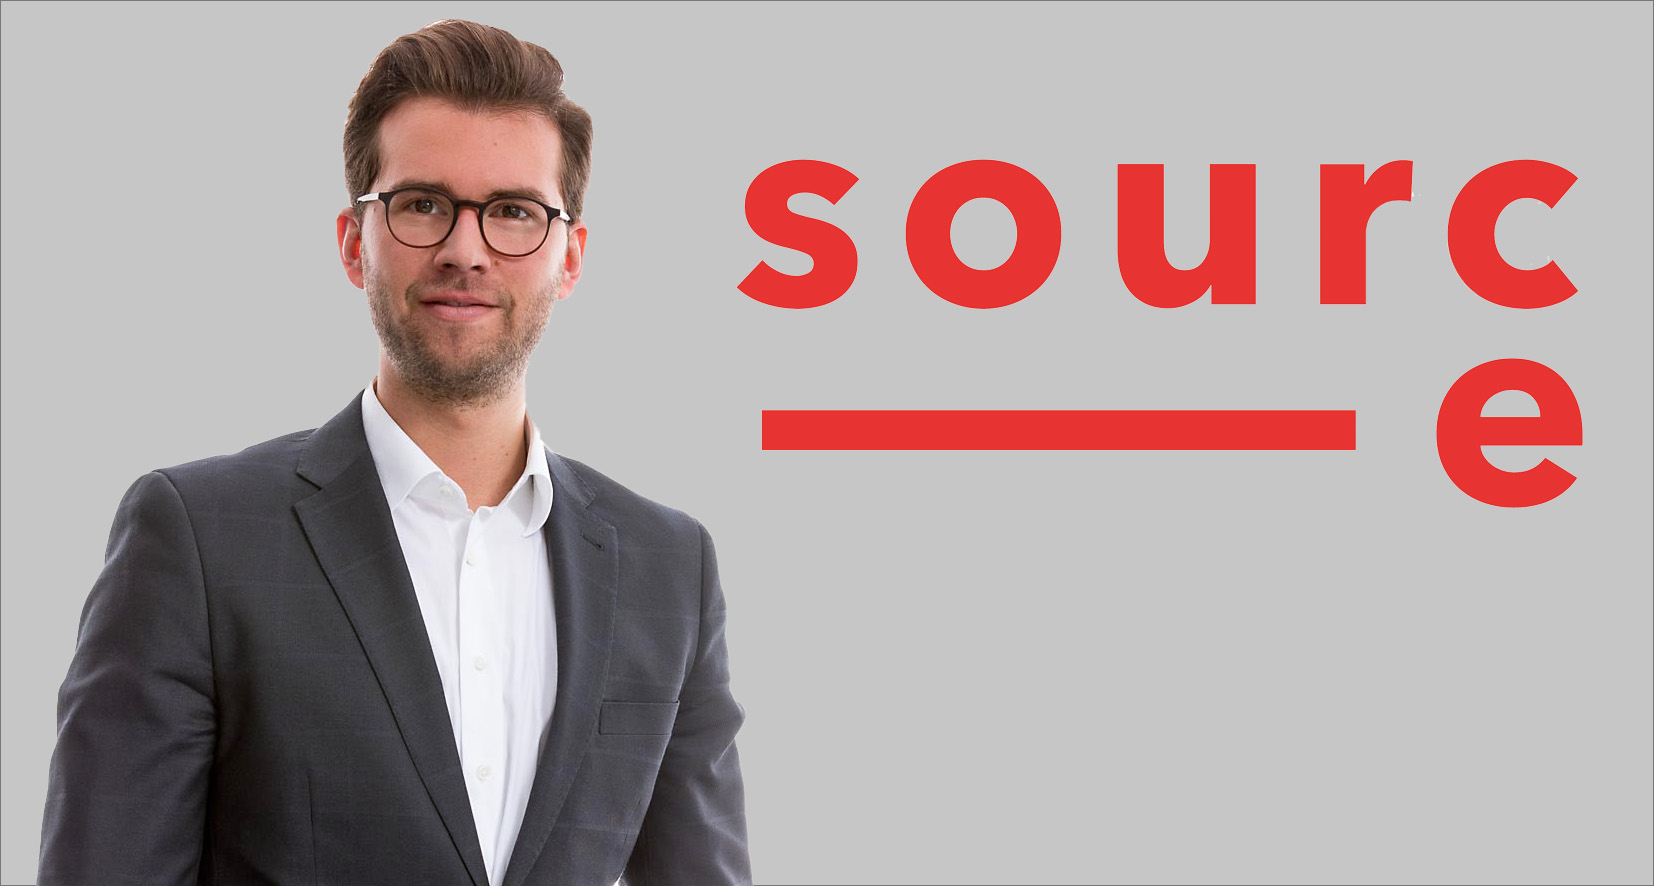 Interview: sourc-e – cloud-based print product purchasing tool exploits market niche